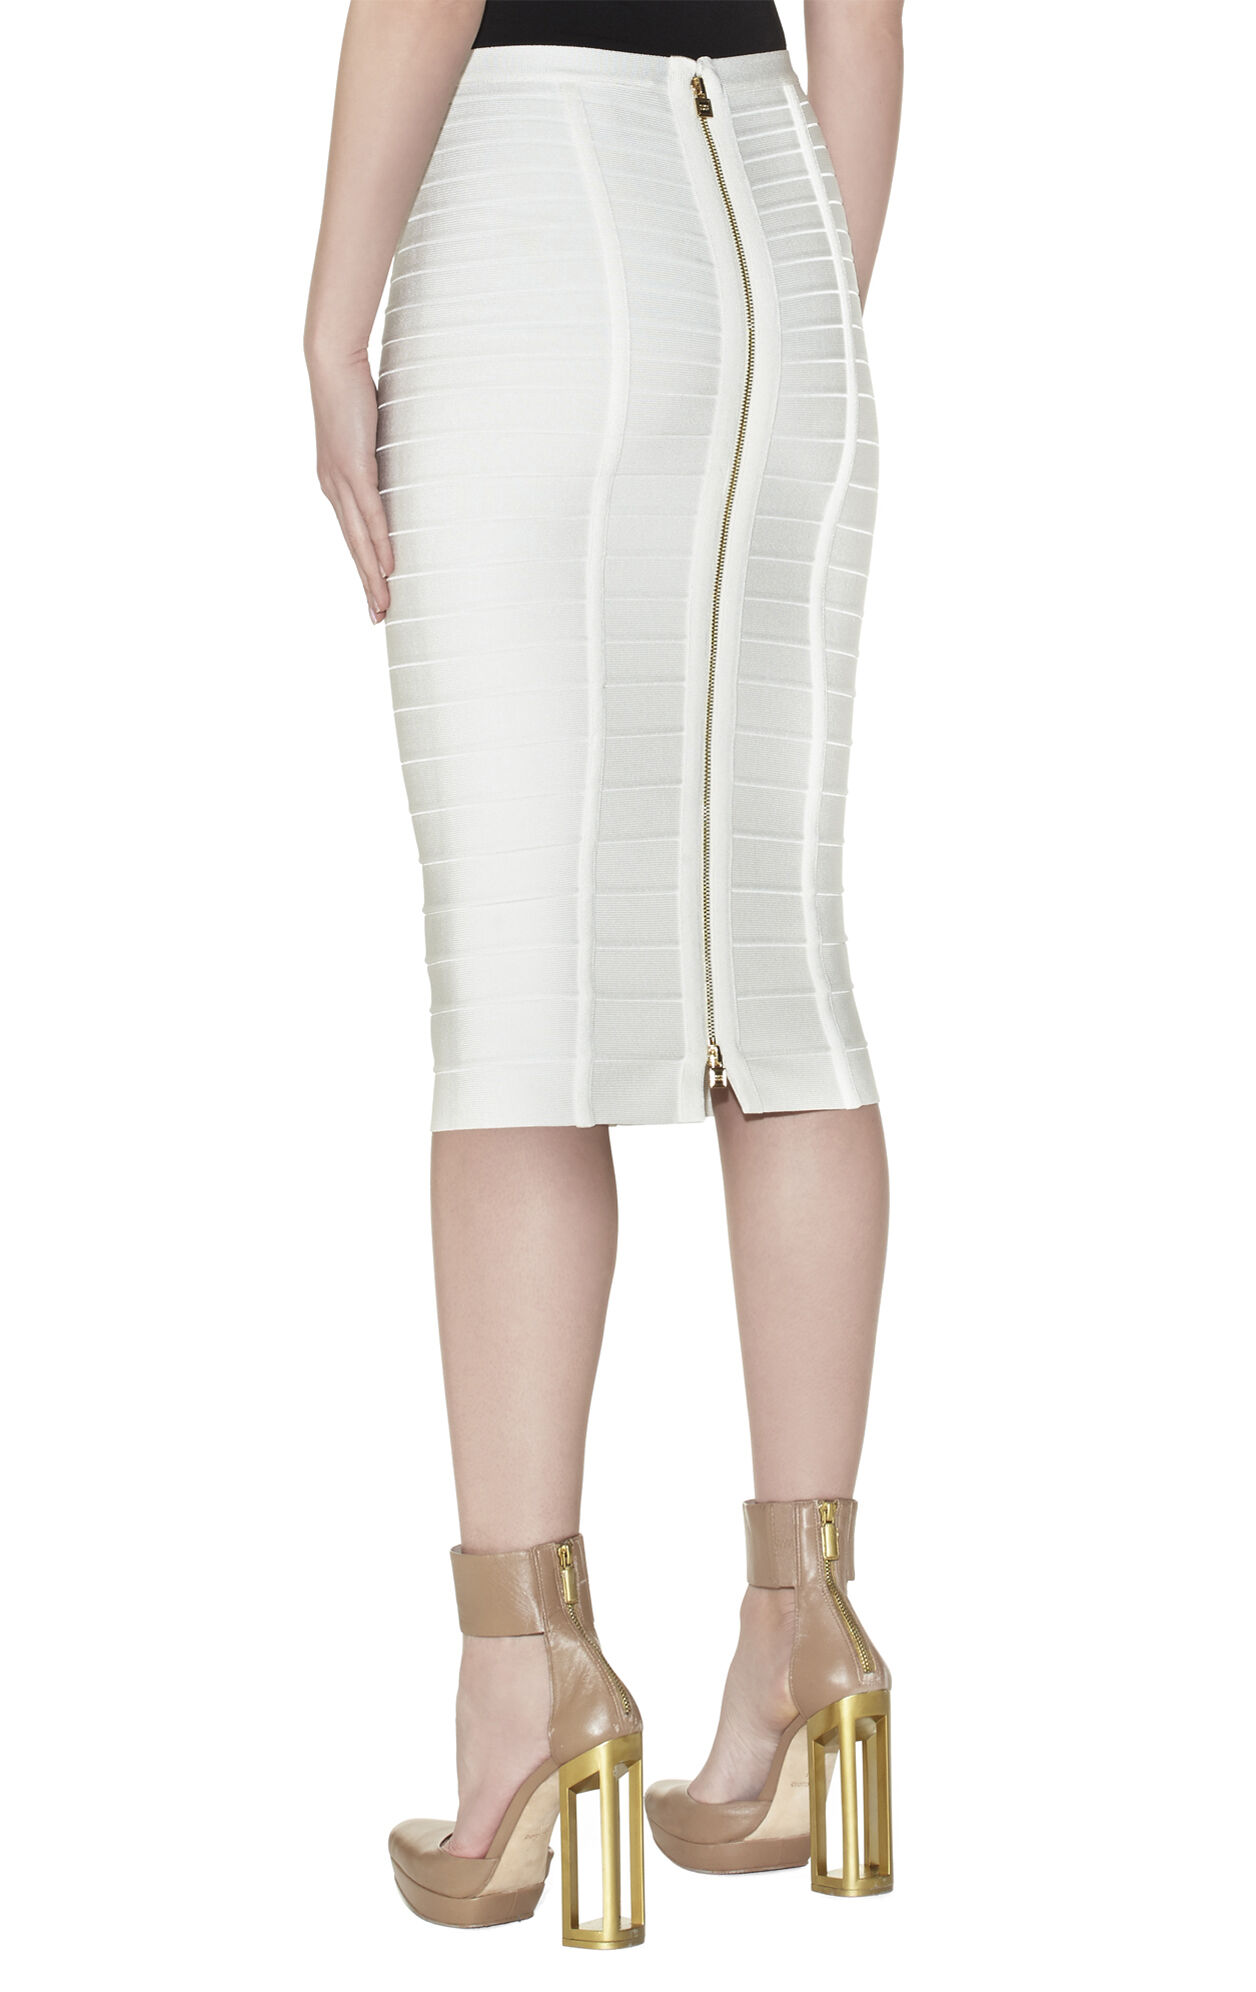 Sia Signature Bandage Skirt